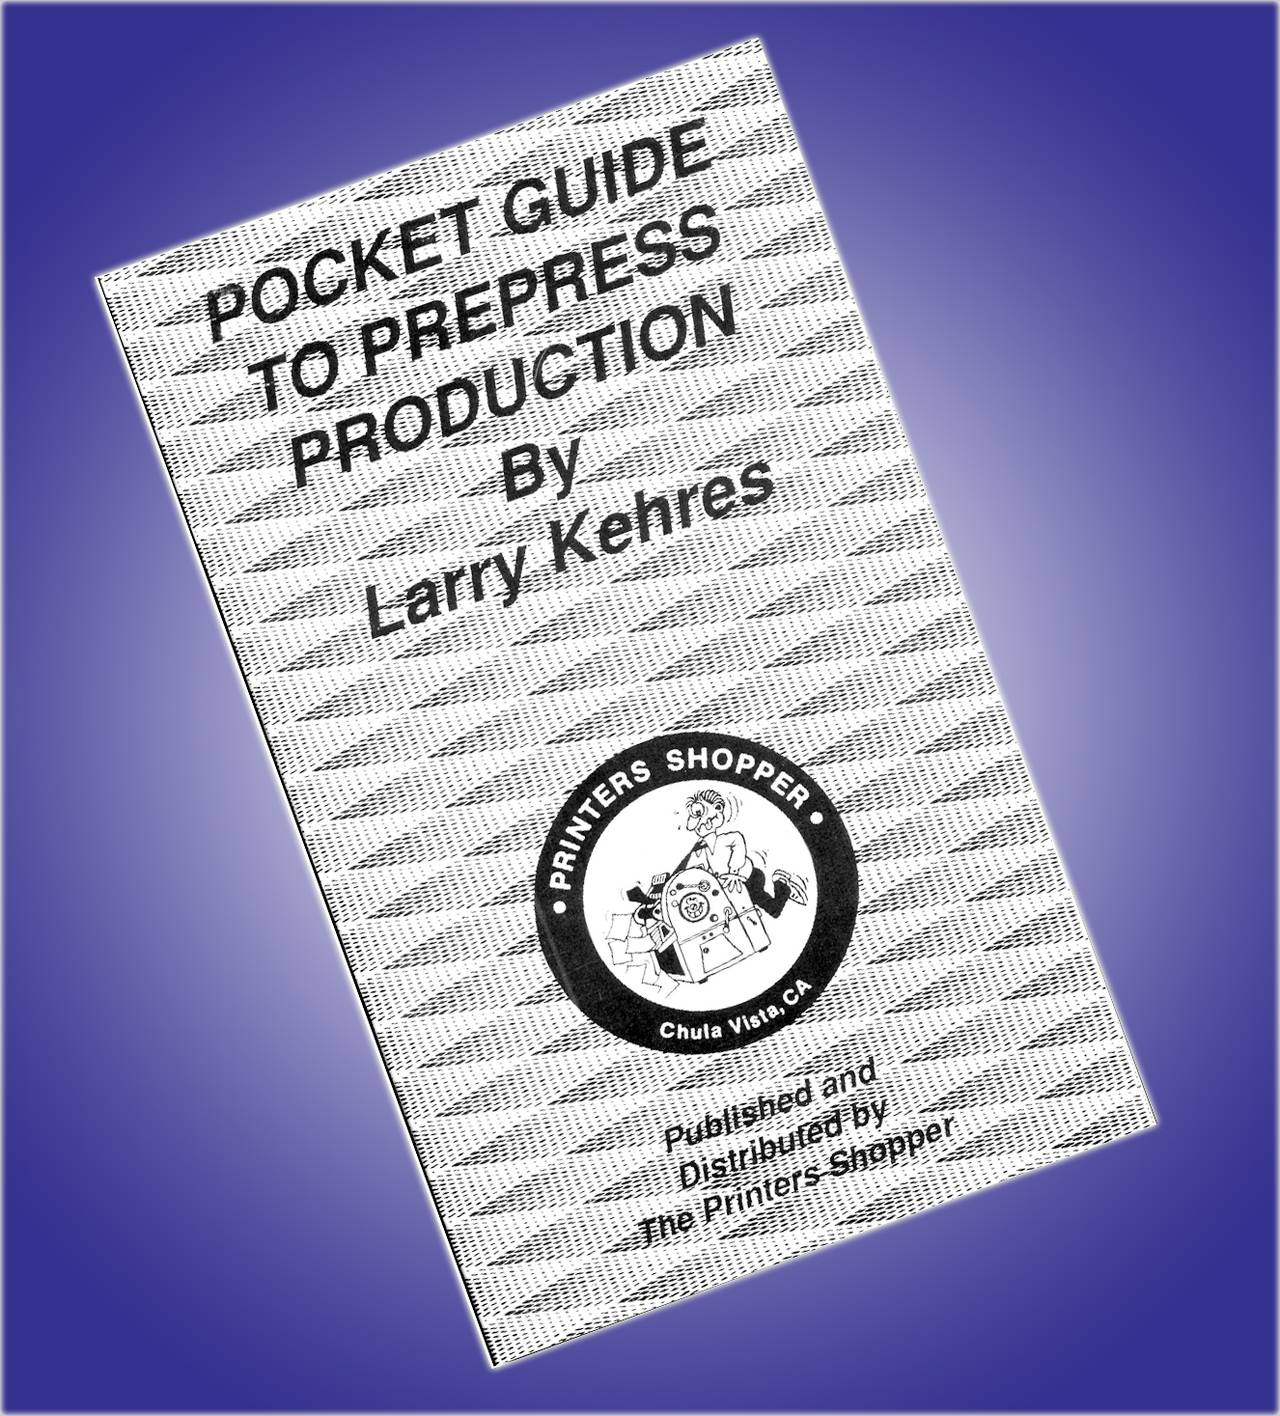 POCKET GUIDE TO PREPRESS By Larry Kehres